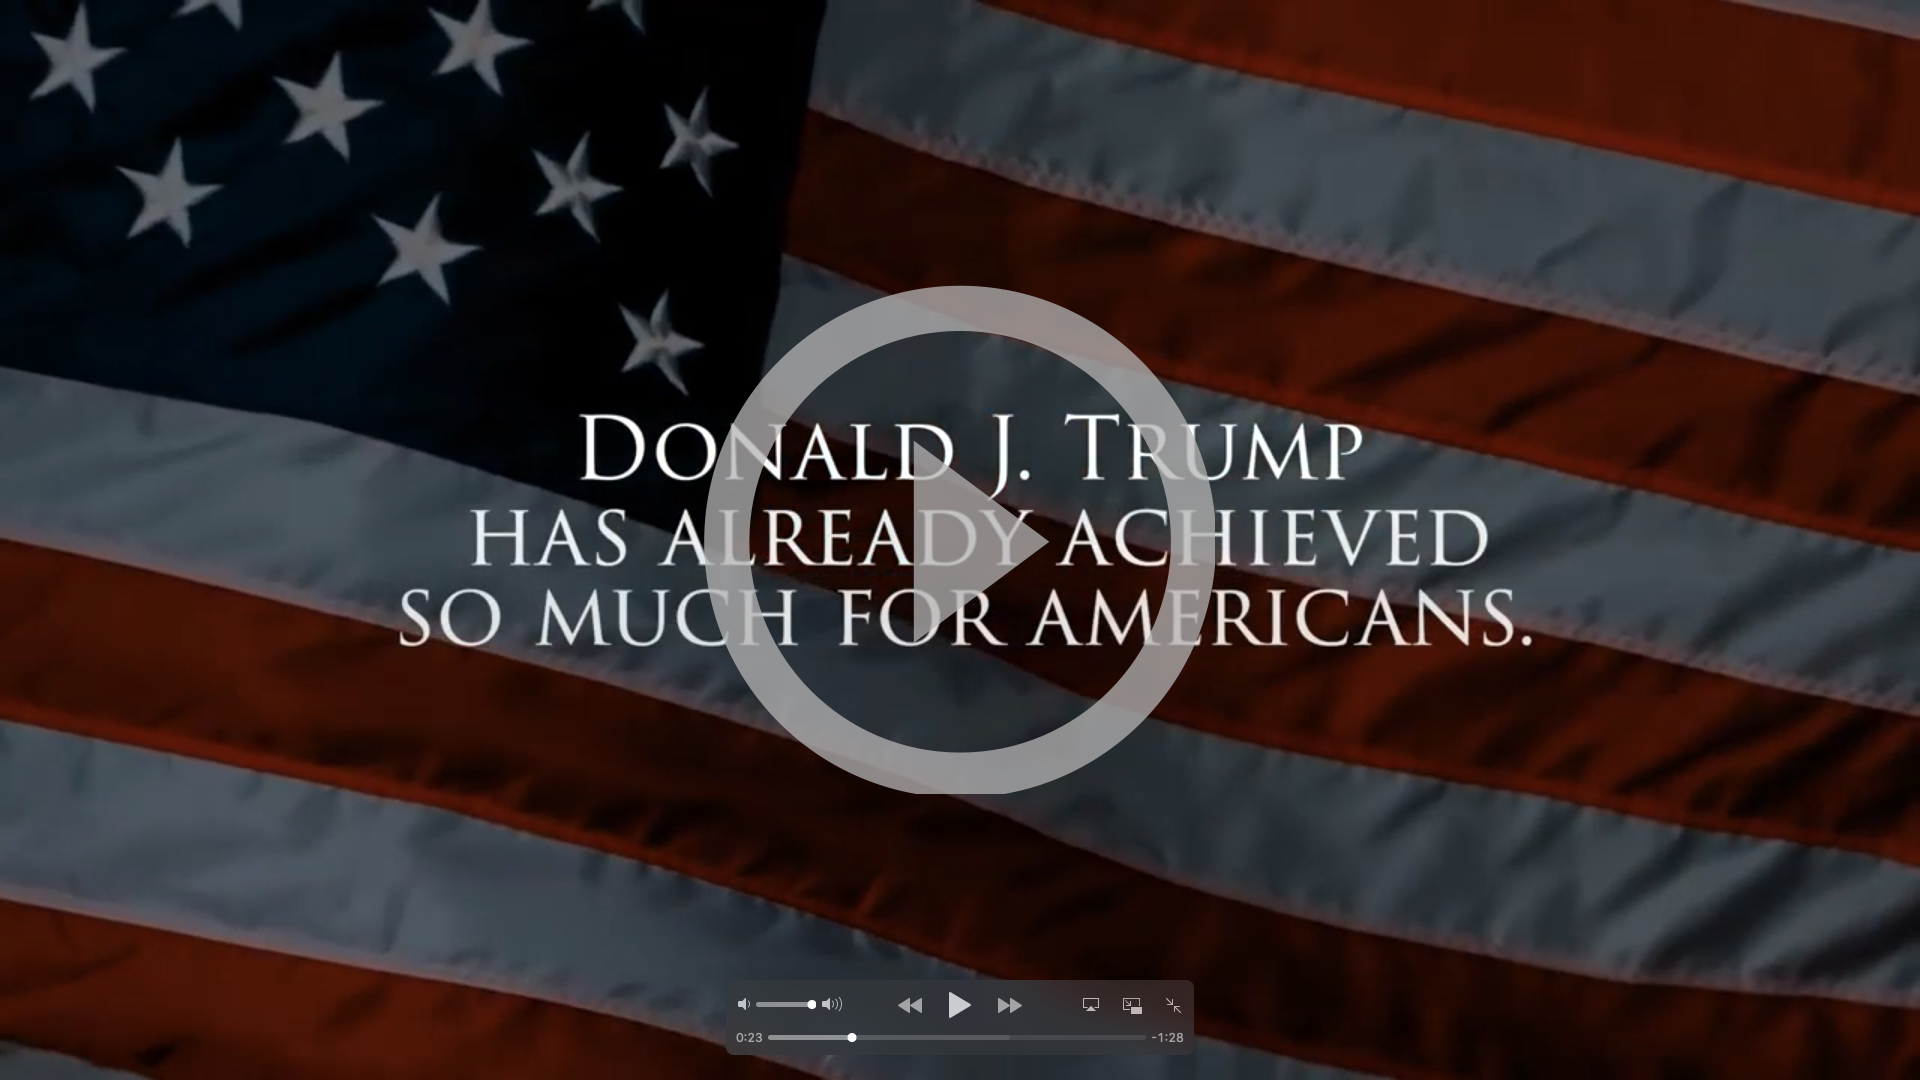 Promises Made, Promises Kept. Play the video of President Trump's promises